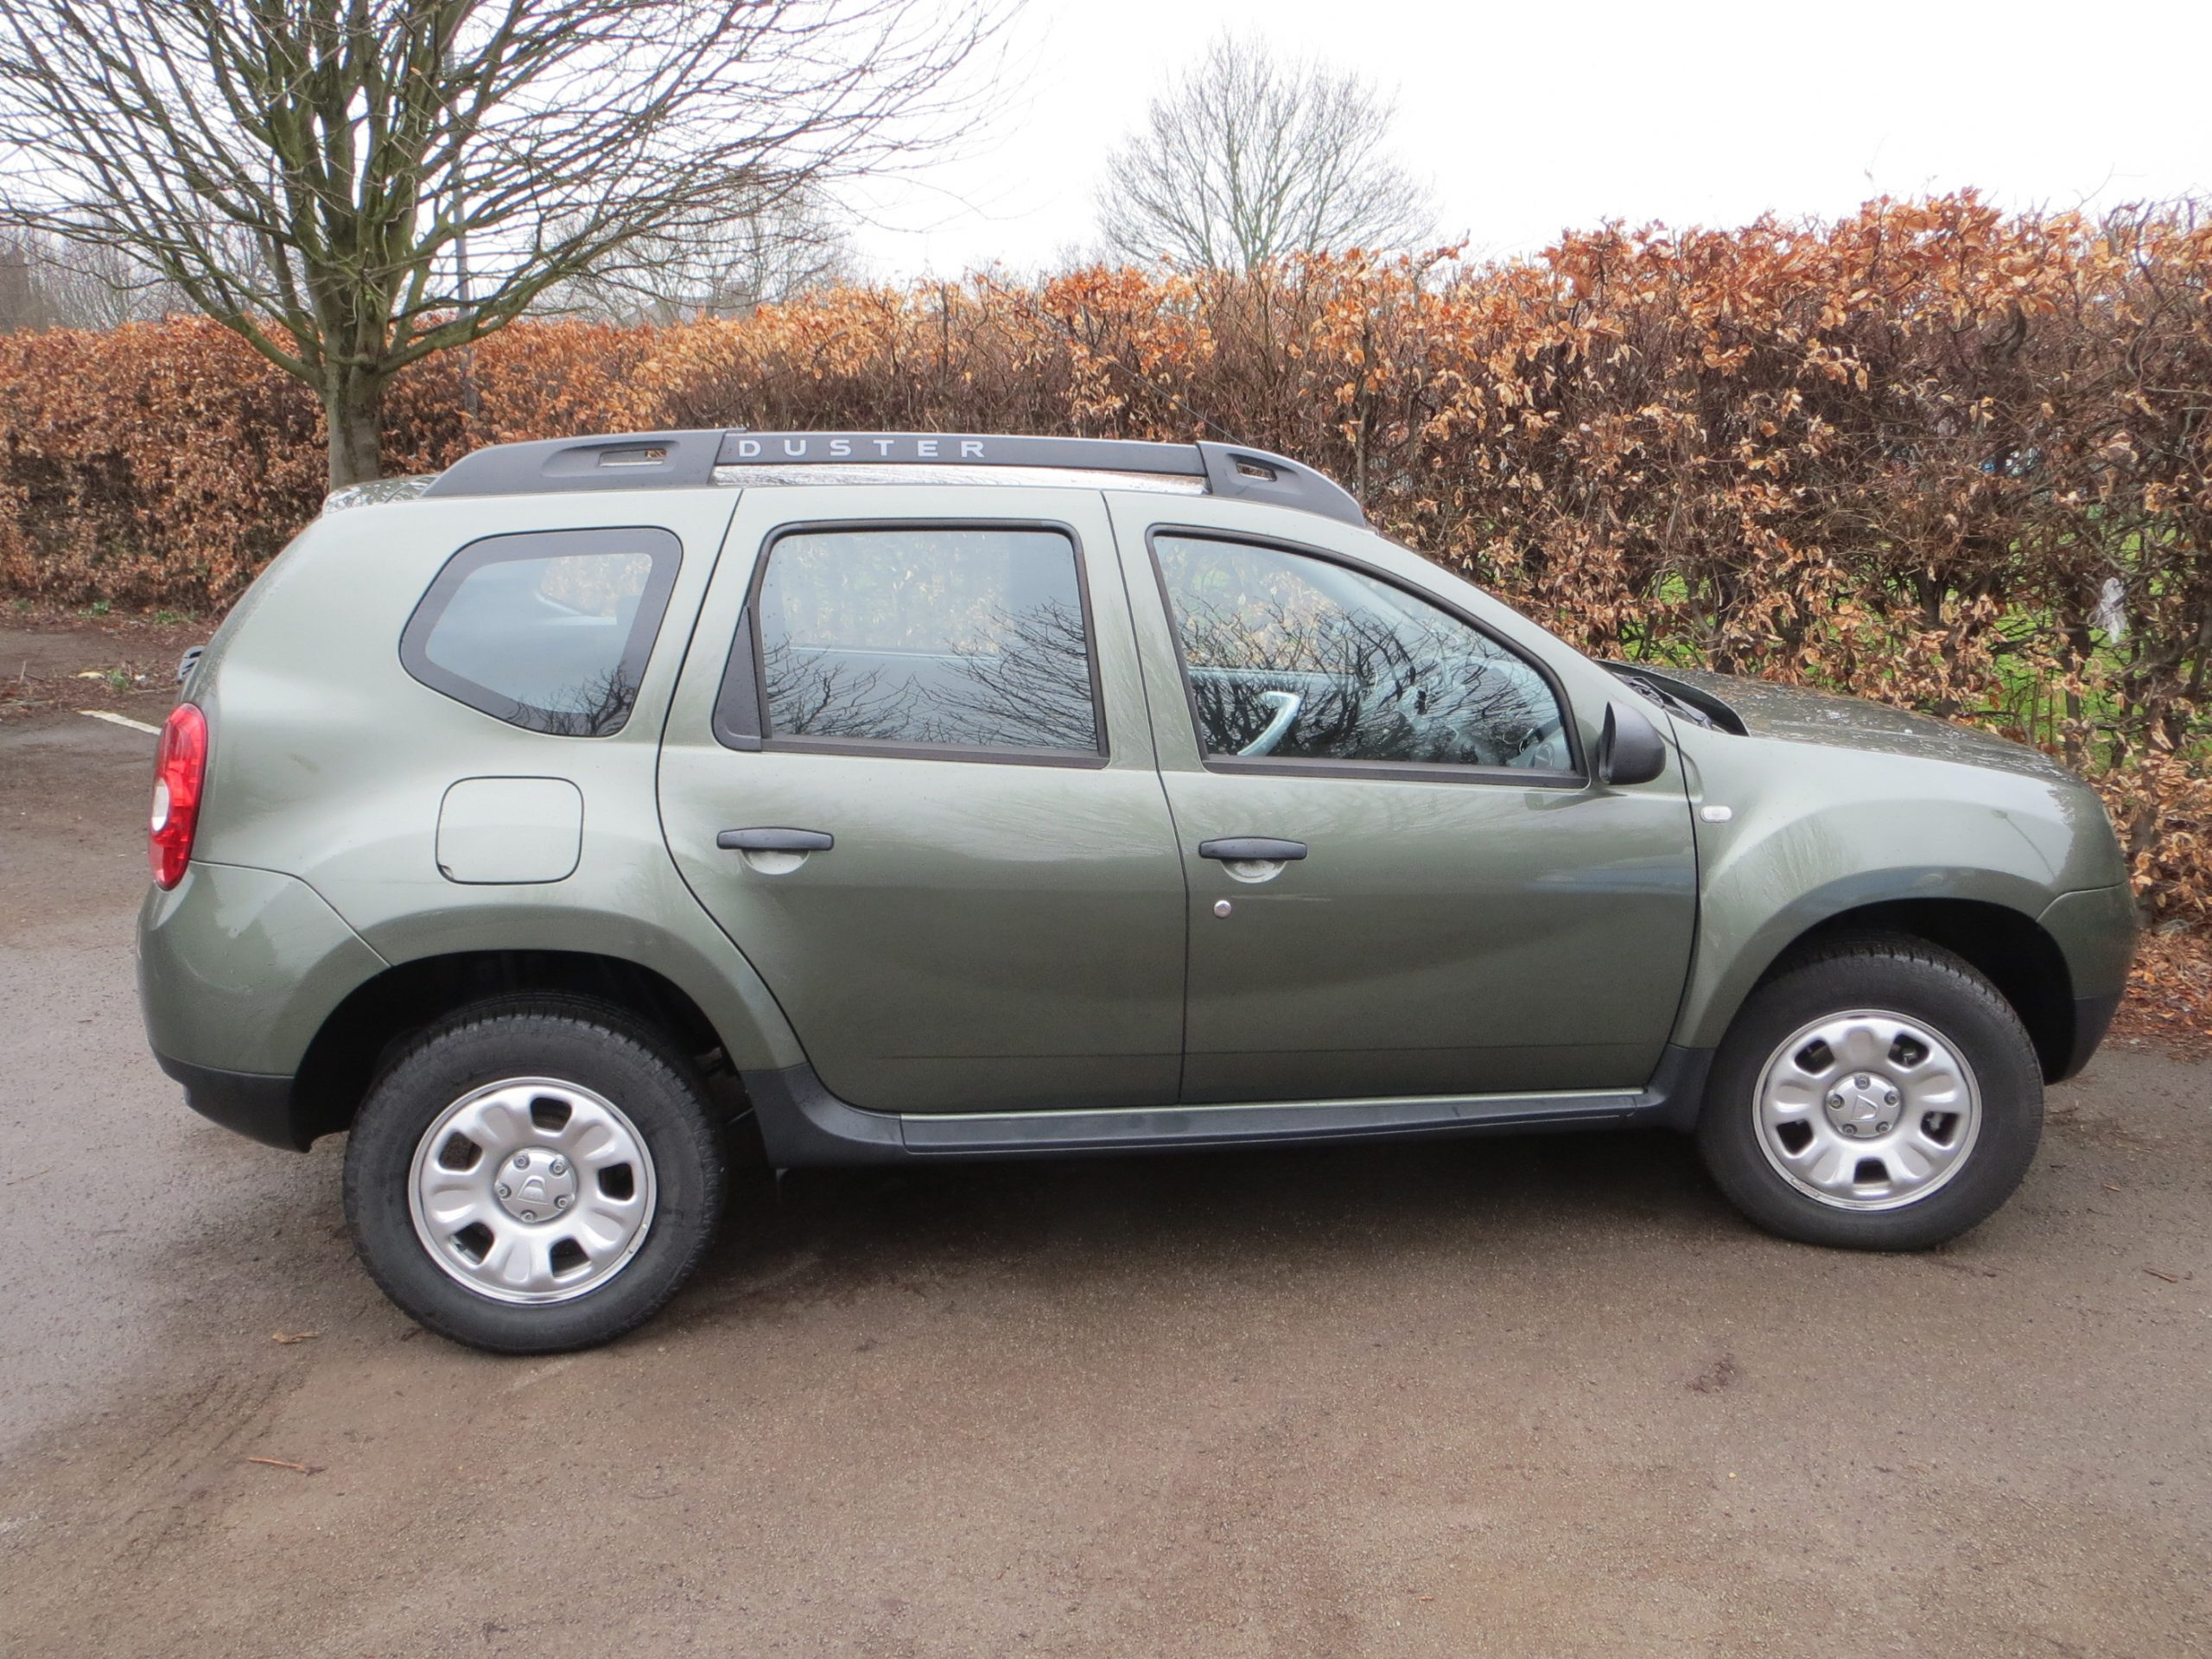 Dacia Duster Ambiance 1 5 Dci 110 4x4 Road Test Report Review 12 Wheel World Reviews